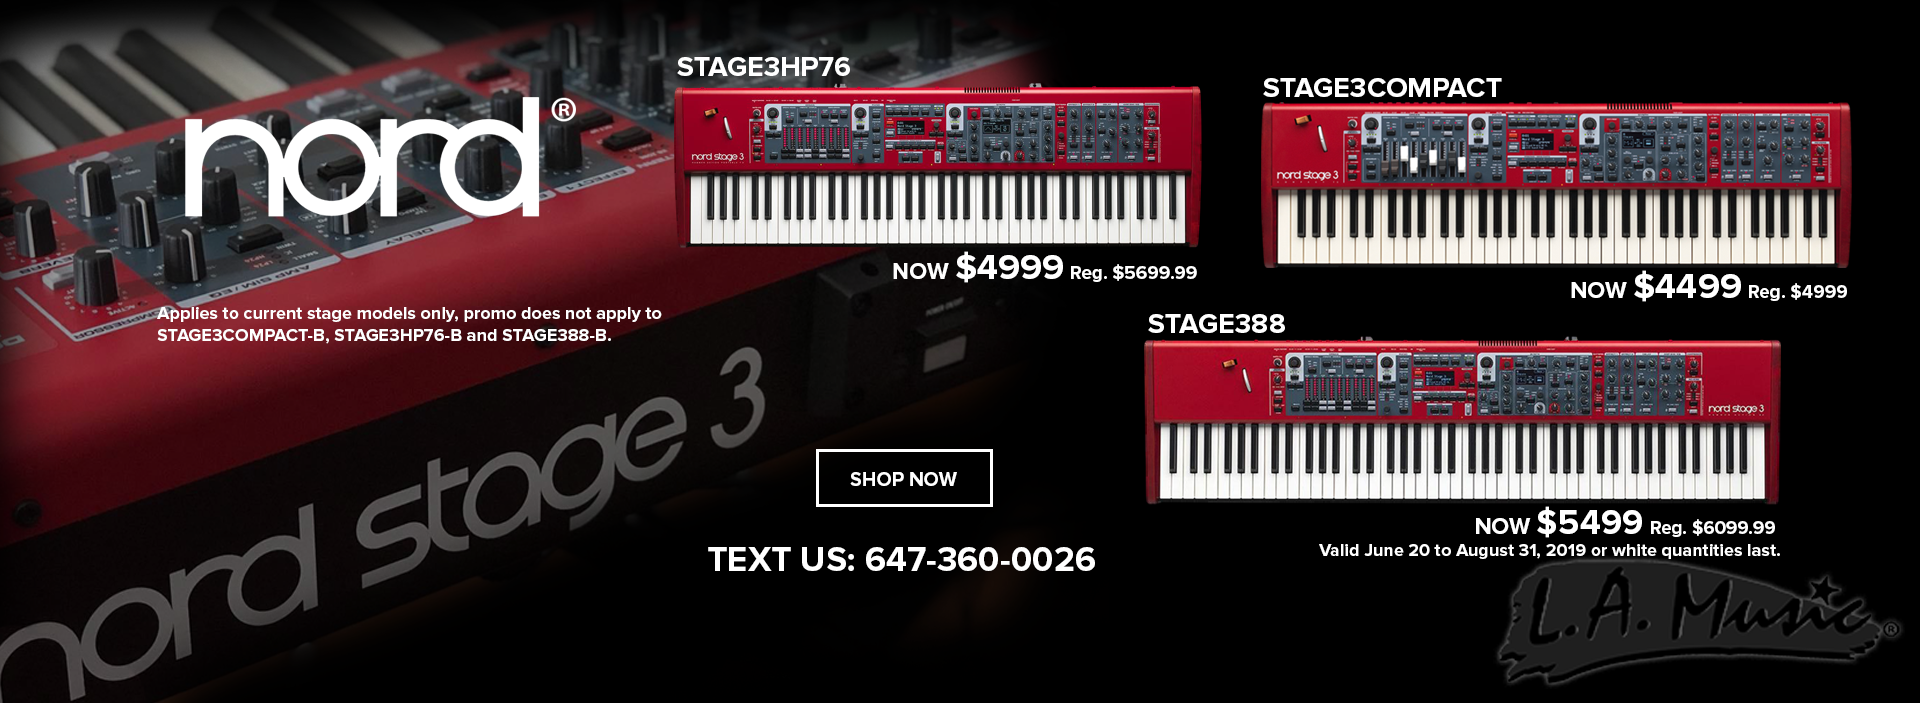 4142edb5931e49 L.A. Music - Canada's Favourite Music Store! | Buy Musical Instruments  Online with Confidence - L.A. Music Canada